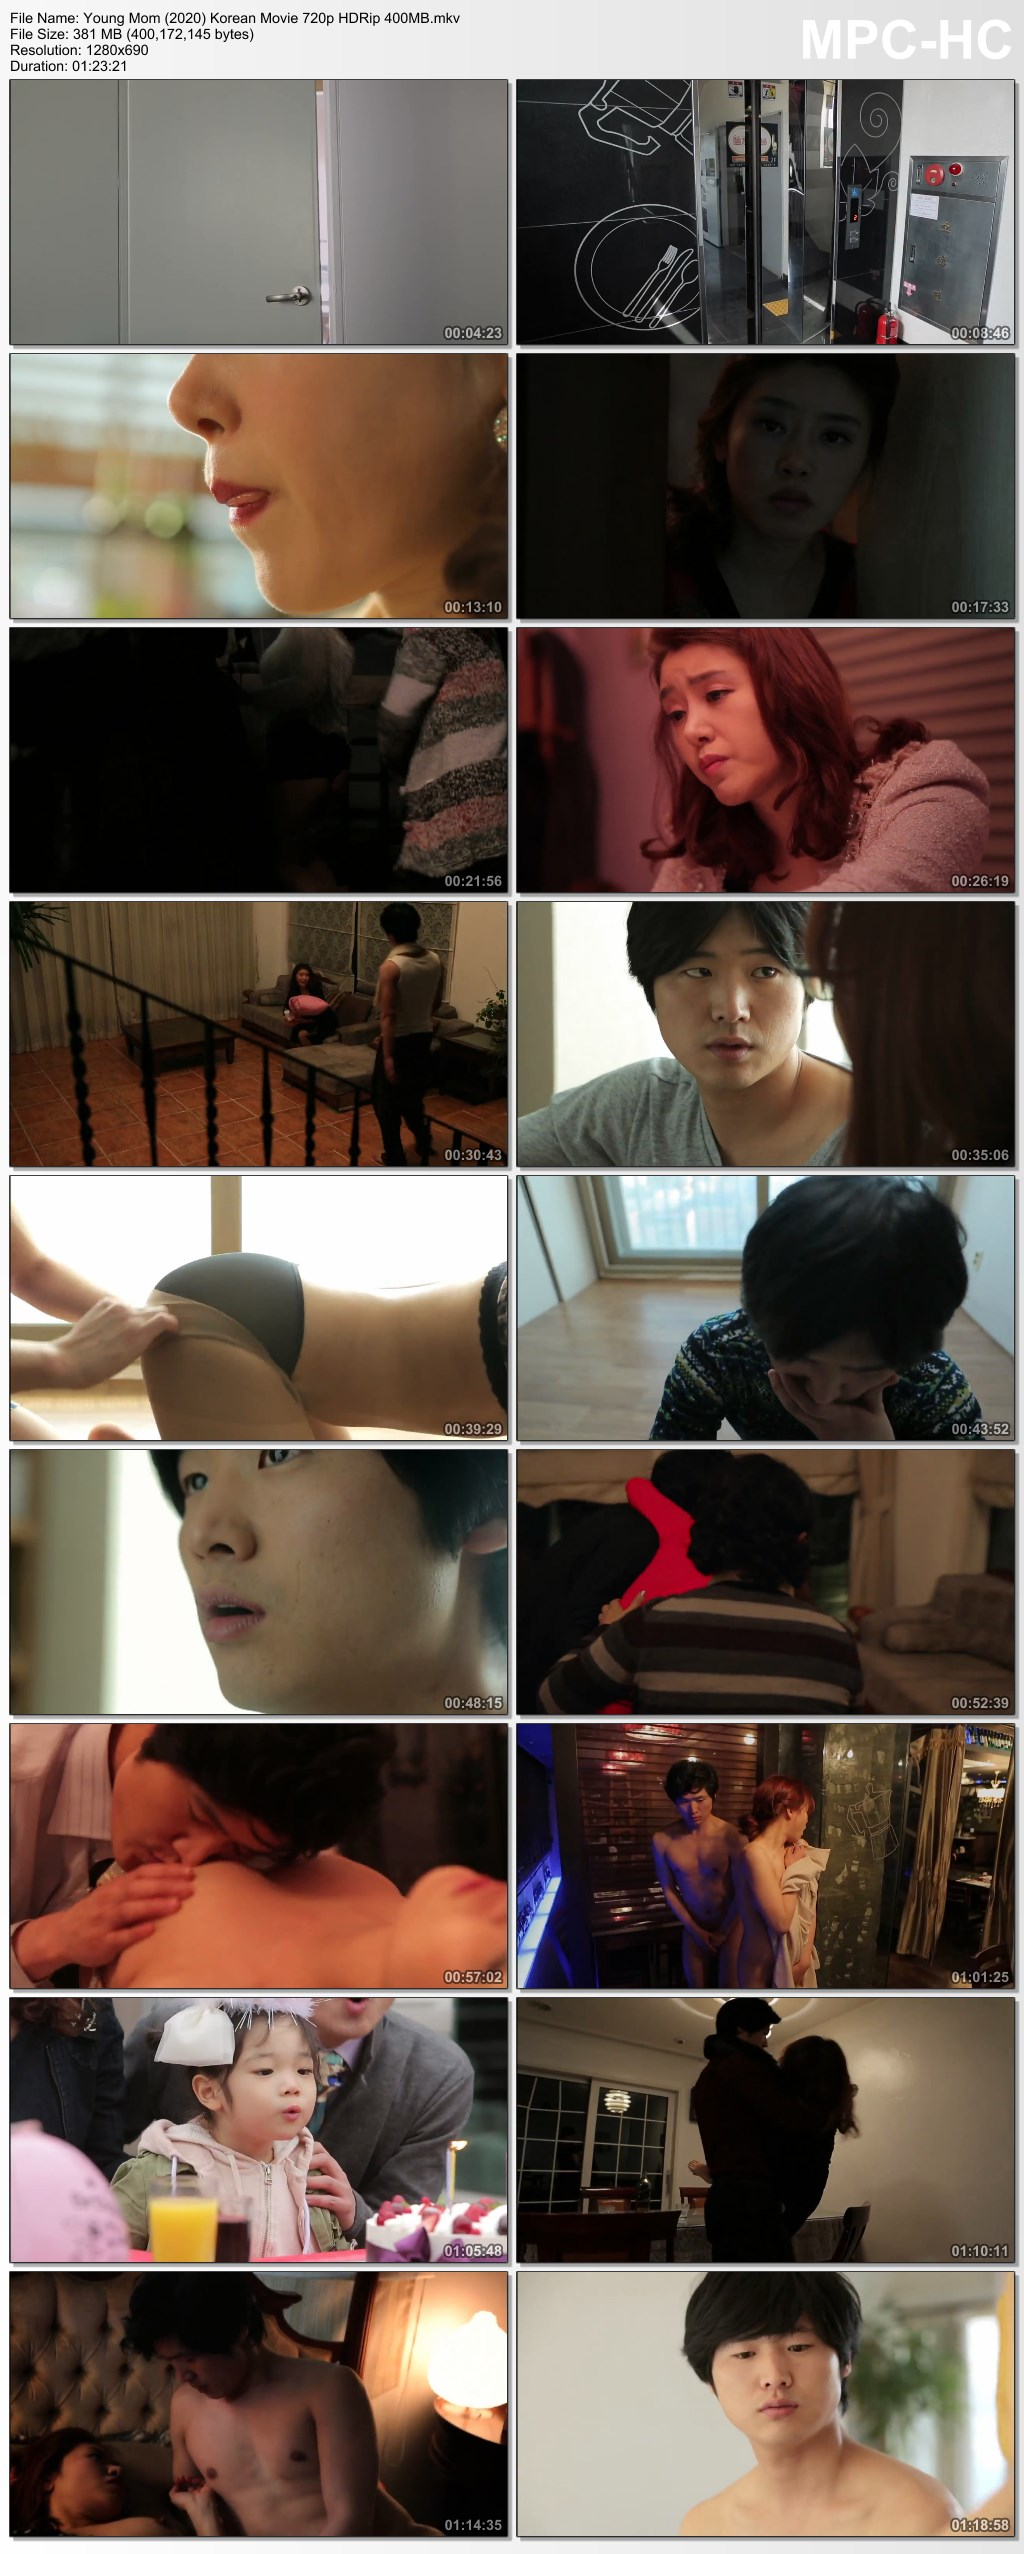 YoungMom2020KoreanMovie720pHDRip400MB.mkv_thumbs_2020.05.09_07.16.33789ac.jpg